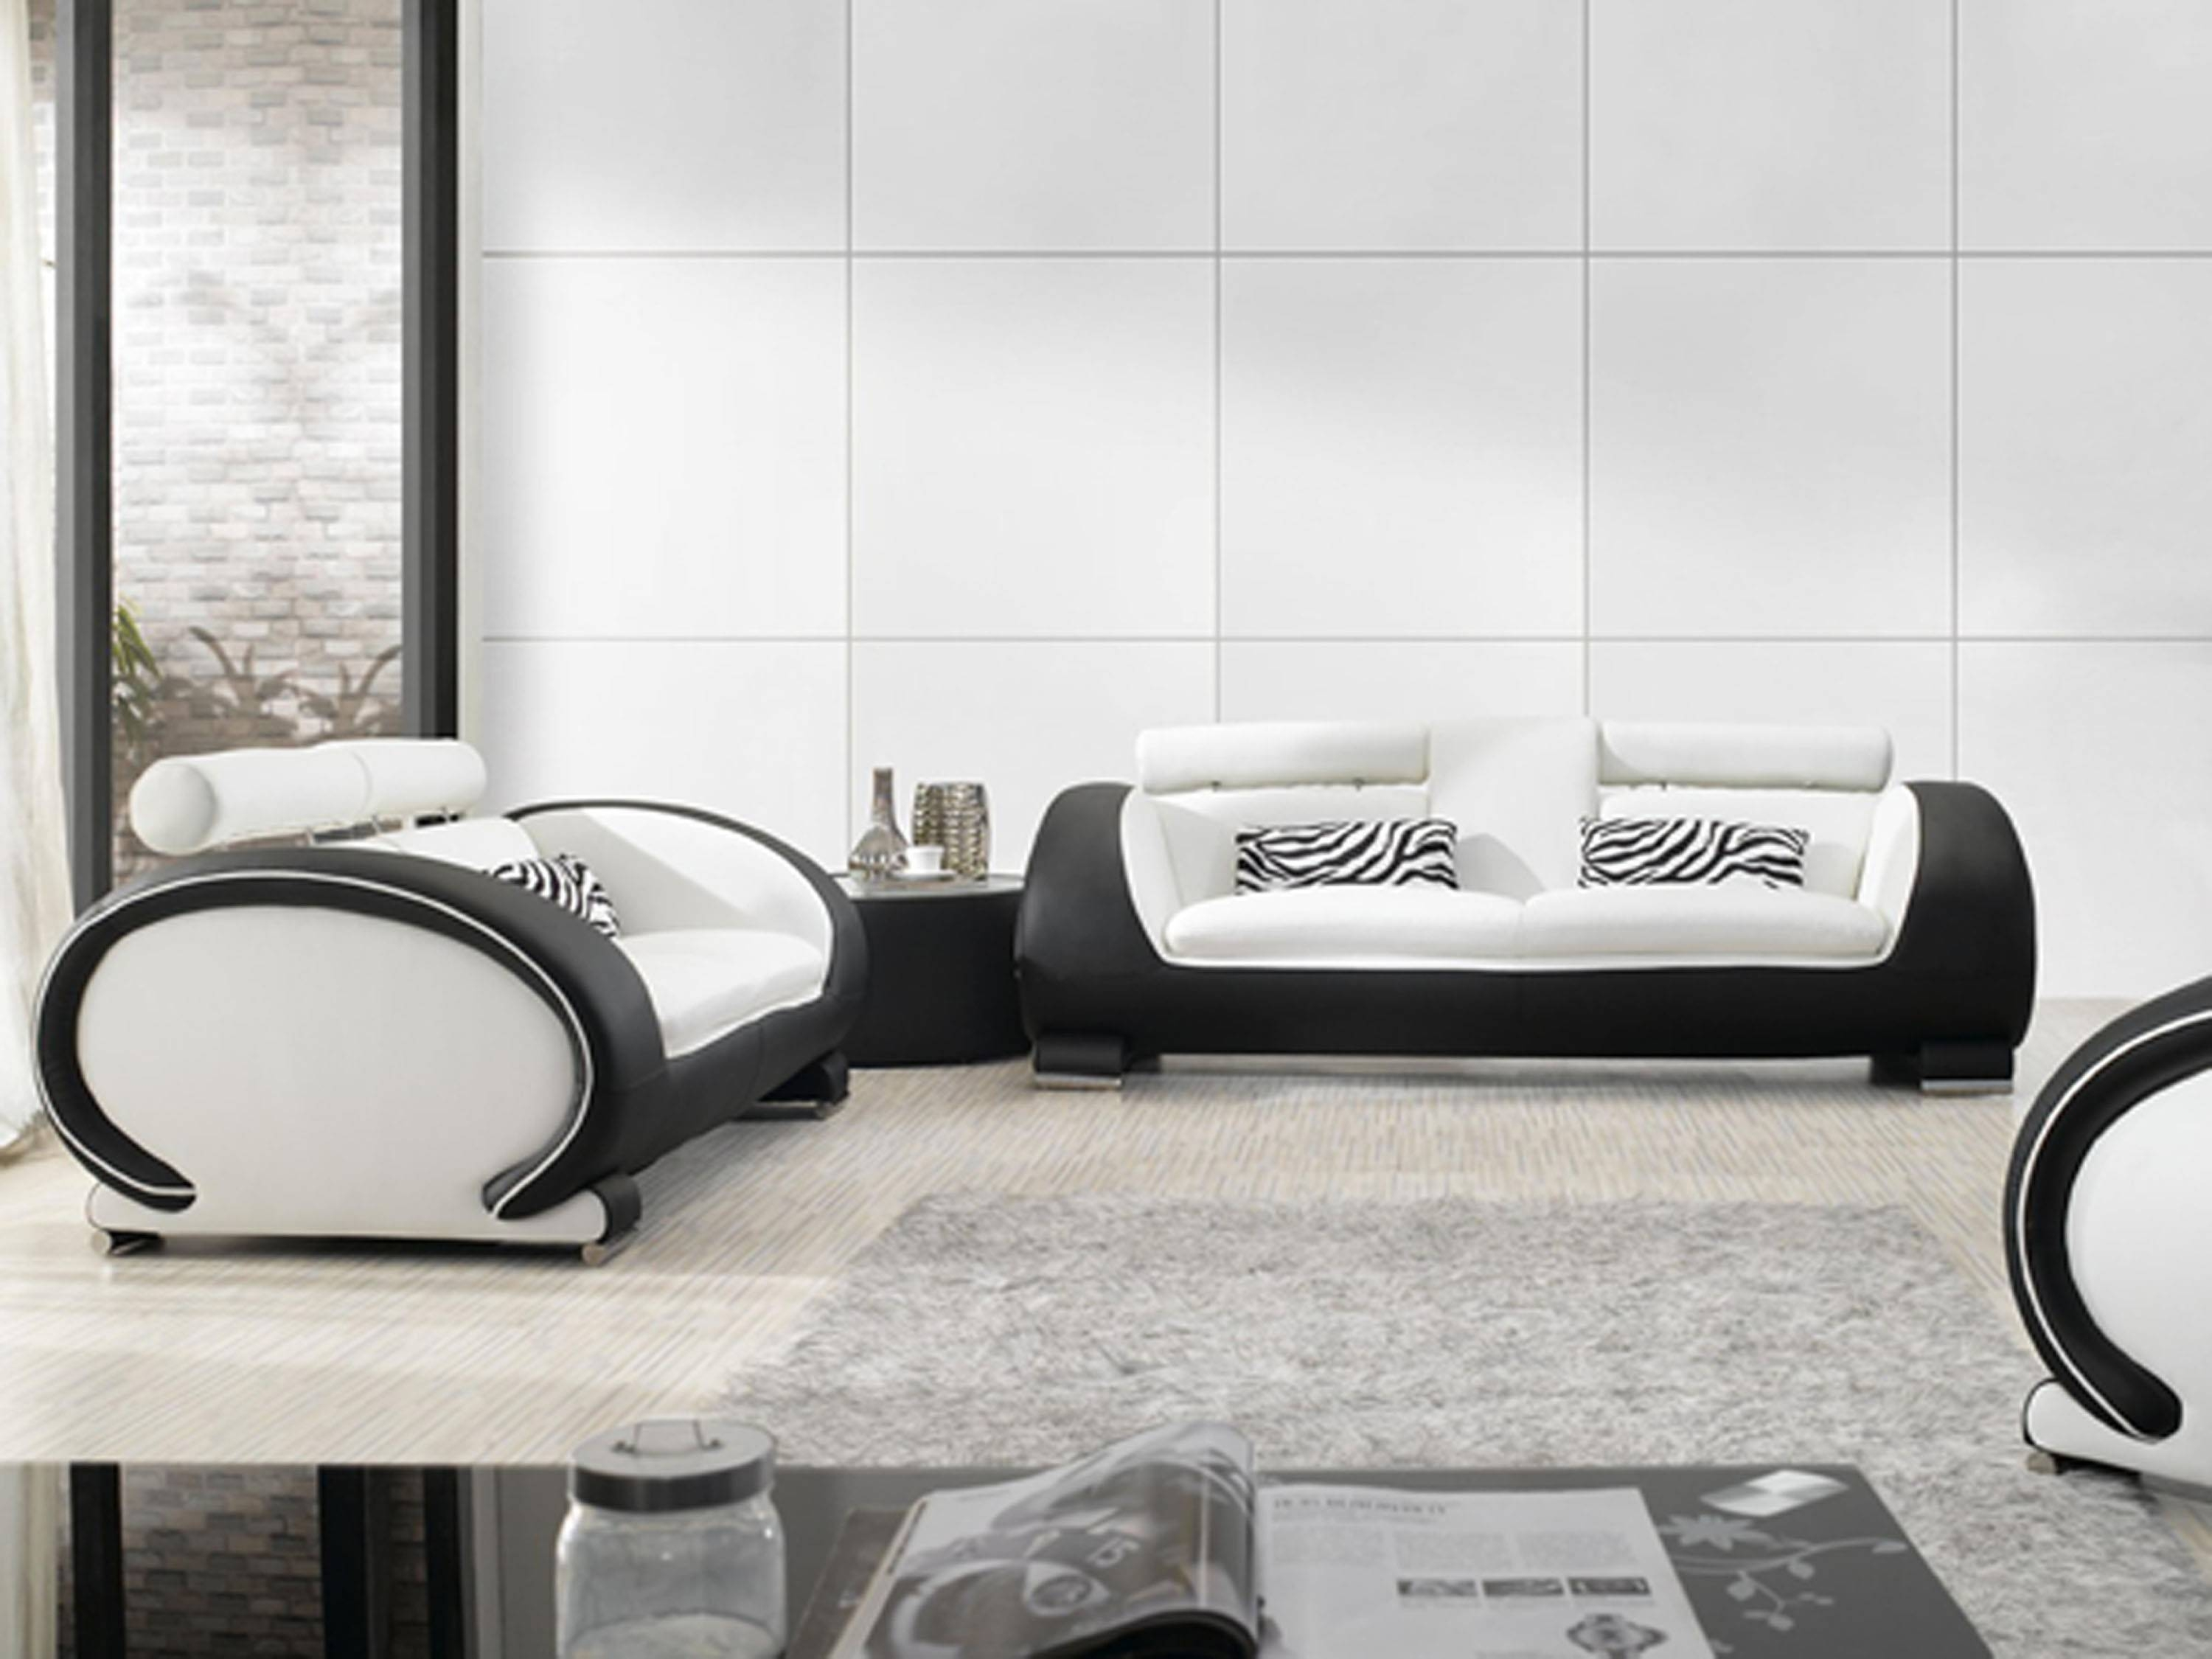 Black And White Sofa - S3Net - Sectional Sofas Sale : S3Net with regard to Black And White Sofas (Image 7 of 30)